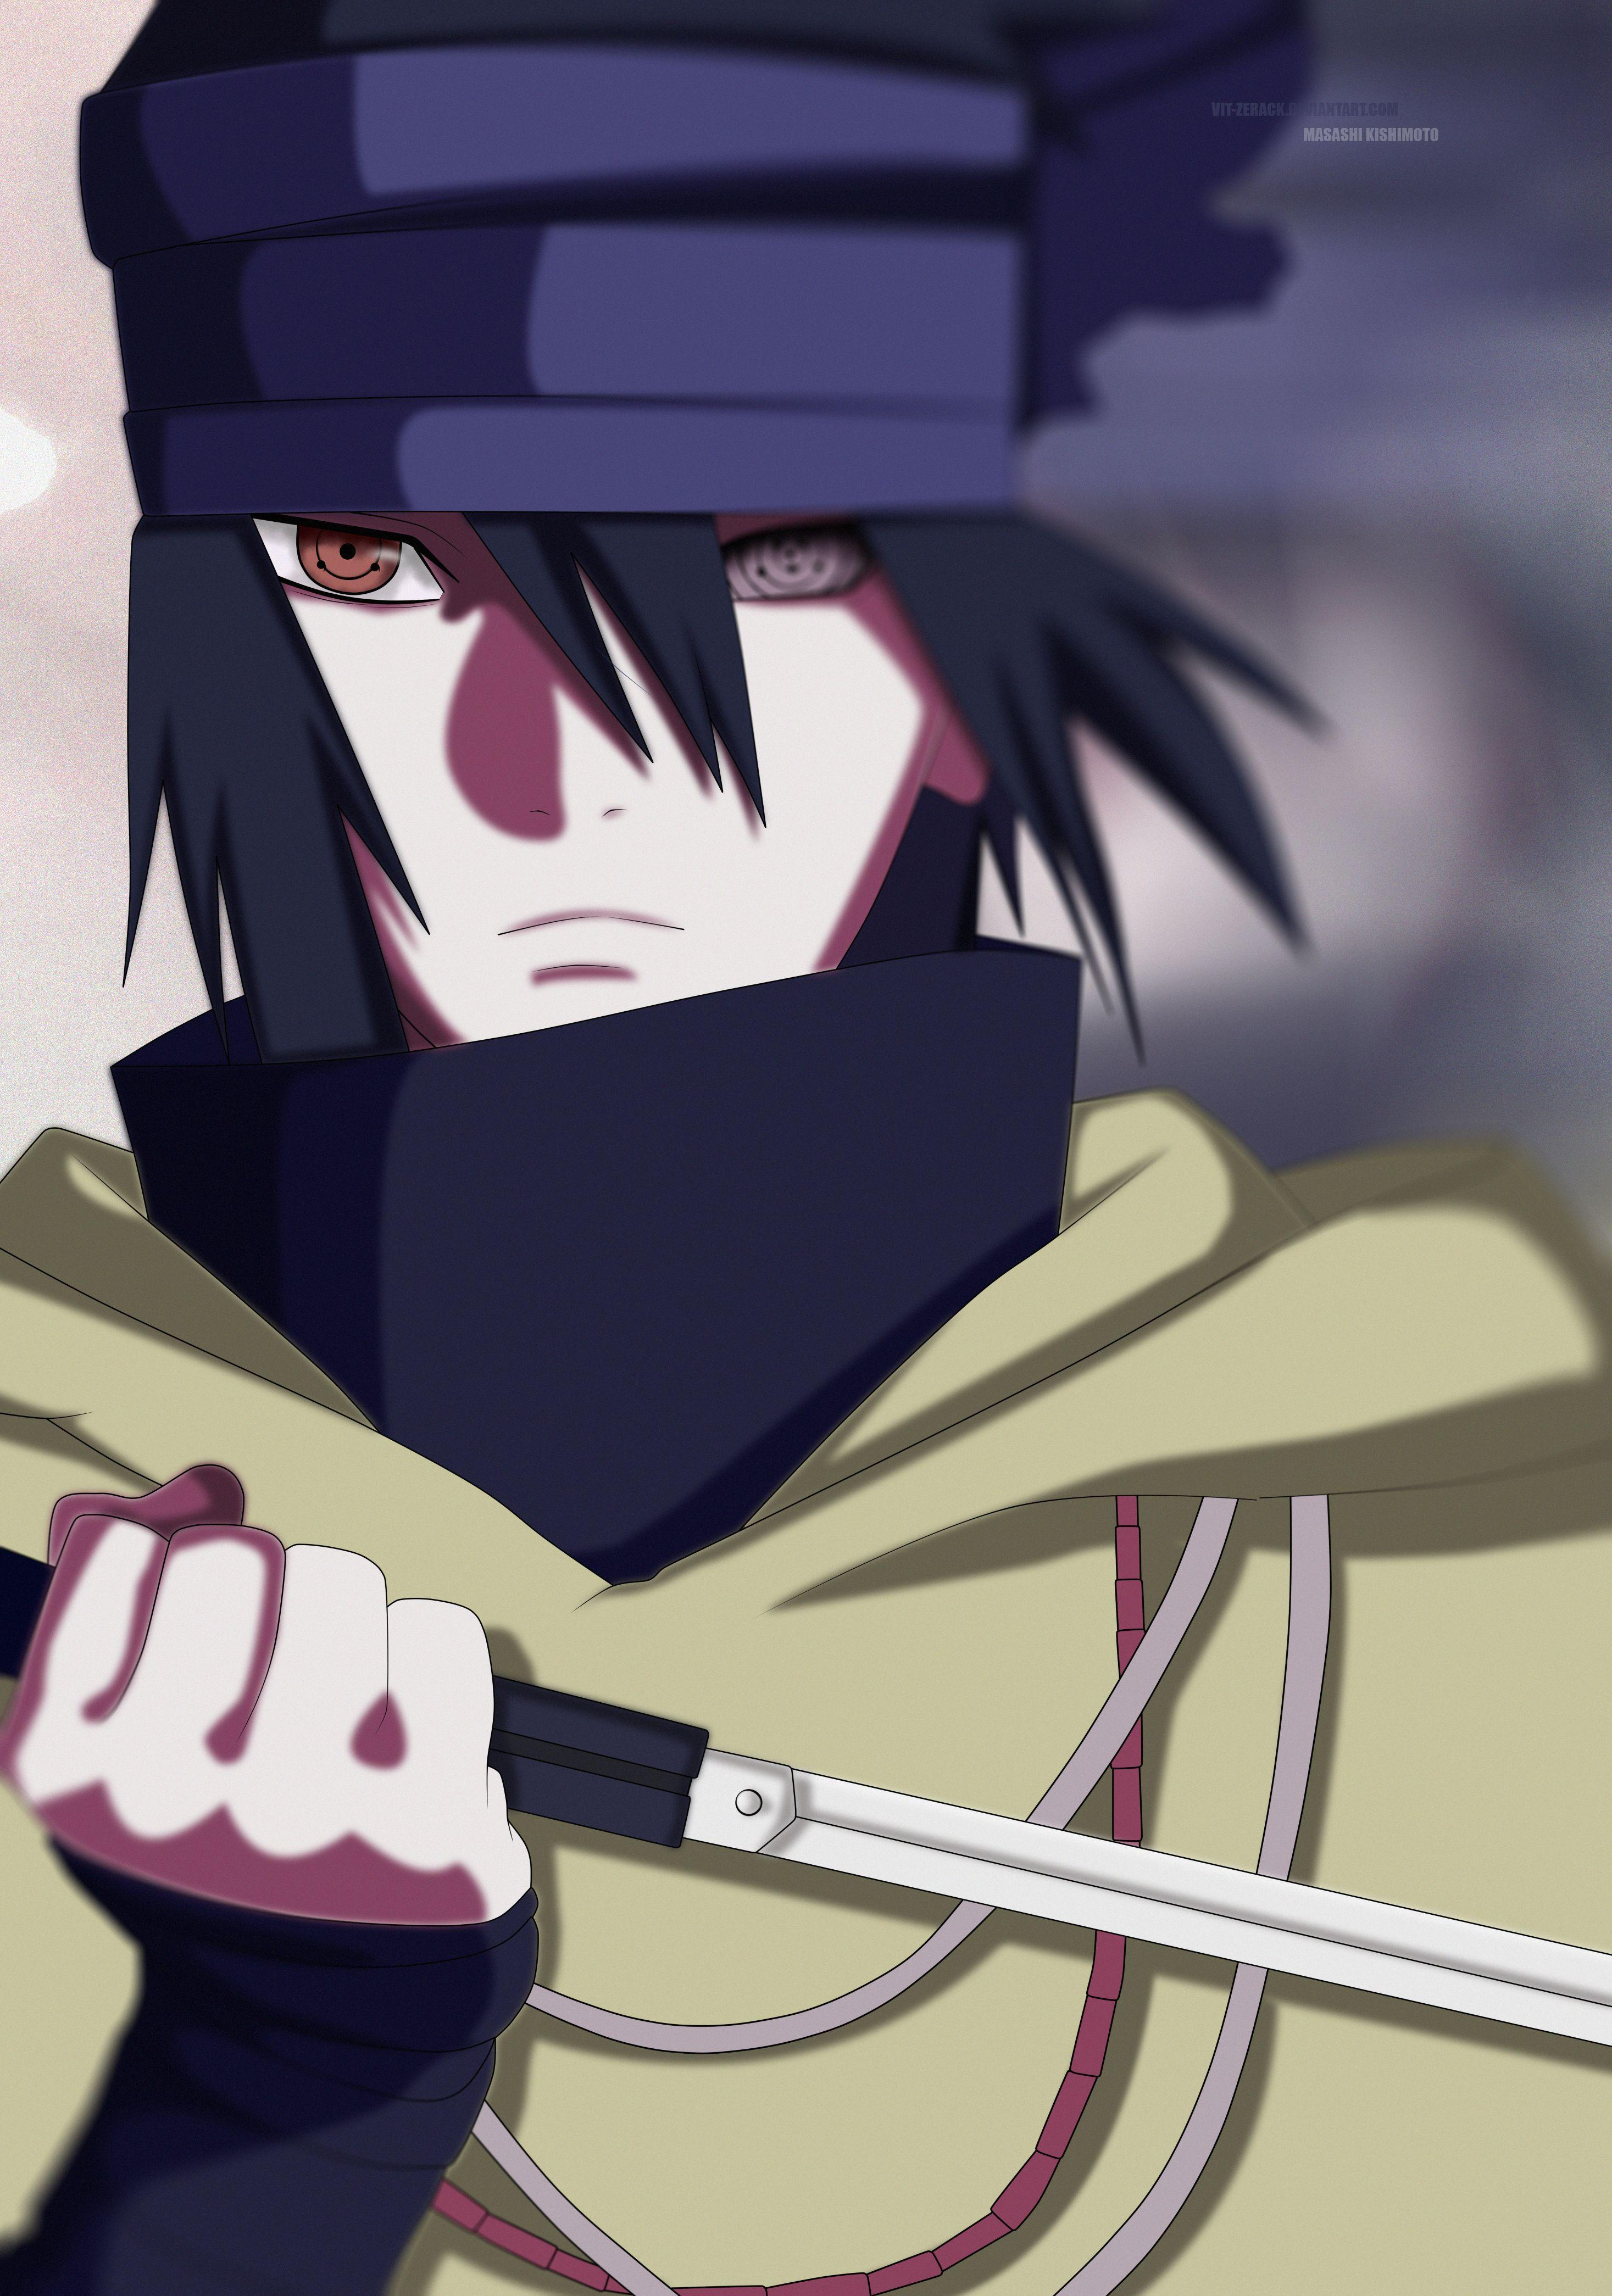 Unduh 500+ Wallpaper Android Sasuke HD